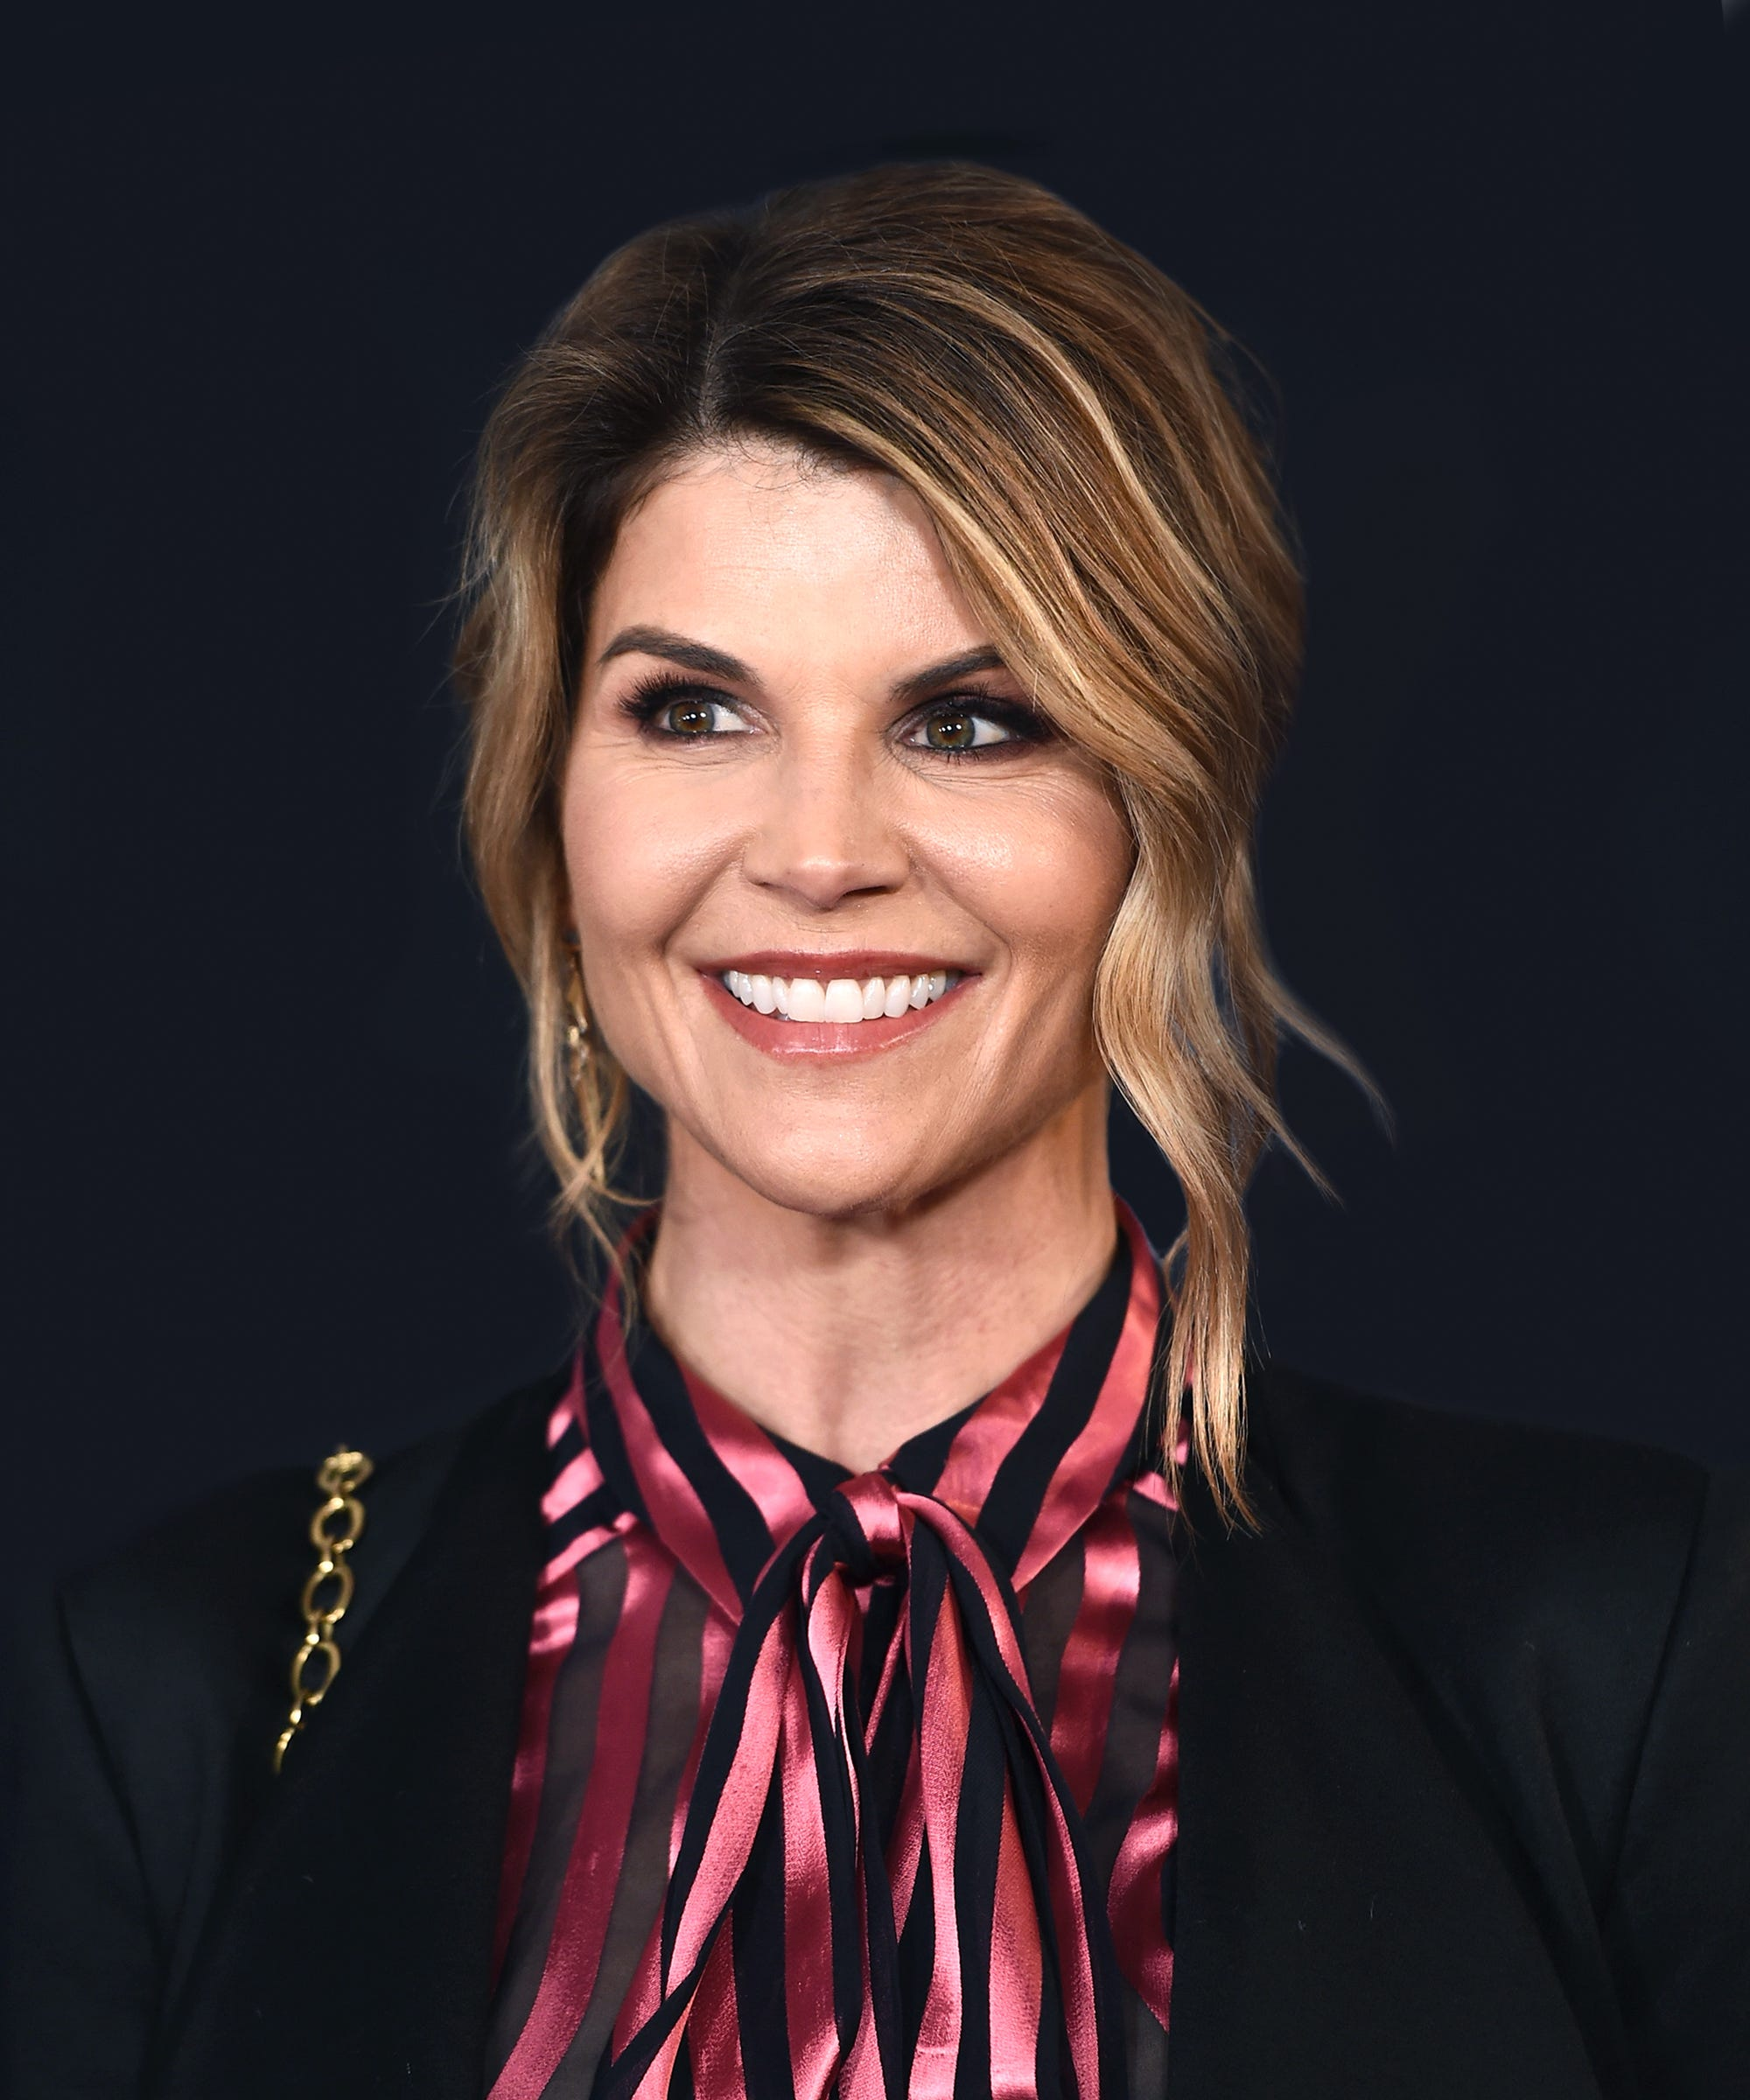 Lori Loughlin & Felicity Huffman Hit With $500B Lawsuit For Varsity Blues Scam